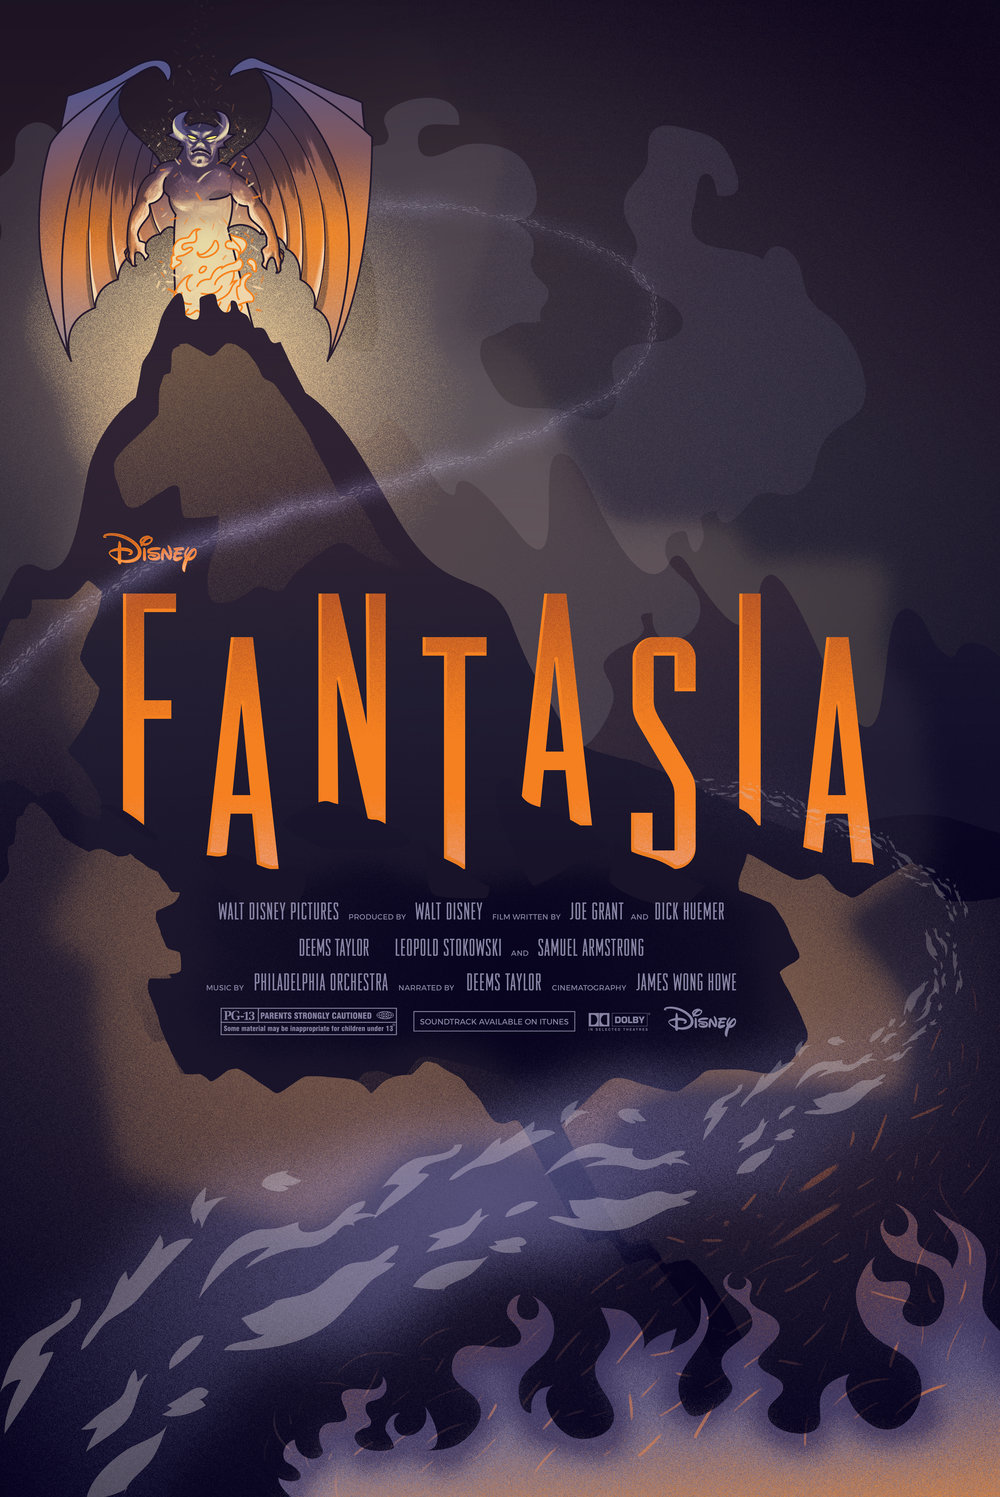 Fantasia Movie Poster & Colatteral - The objective was to recreate a movie poster from Disney's colorful past along with movie collateral, so I chose the original Fantasia because of my love of classical music and the vivid animation that sprang from the movie. Night on Bald Mountain was the sequence that I thought would be the most interesting to work with in regards to all the dark imagery and color palette that was used throughout. I created a movie poster, a popcorn bowl, movie tickets, a cup wrap, as well as a cut-out memorabilia doll.